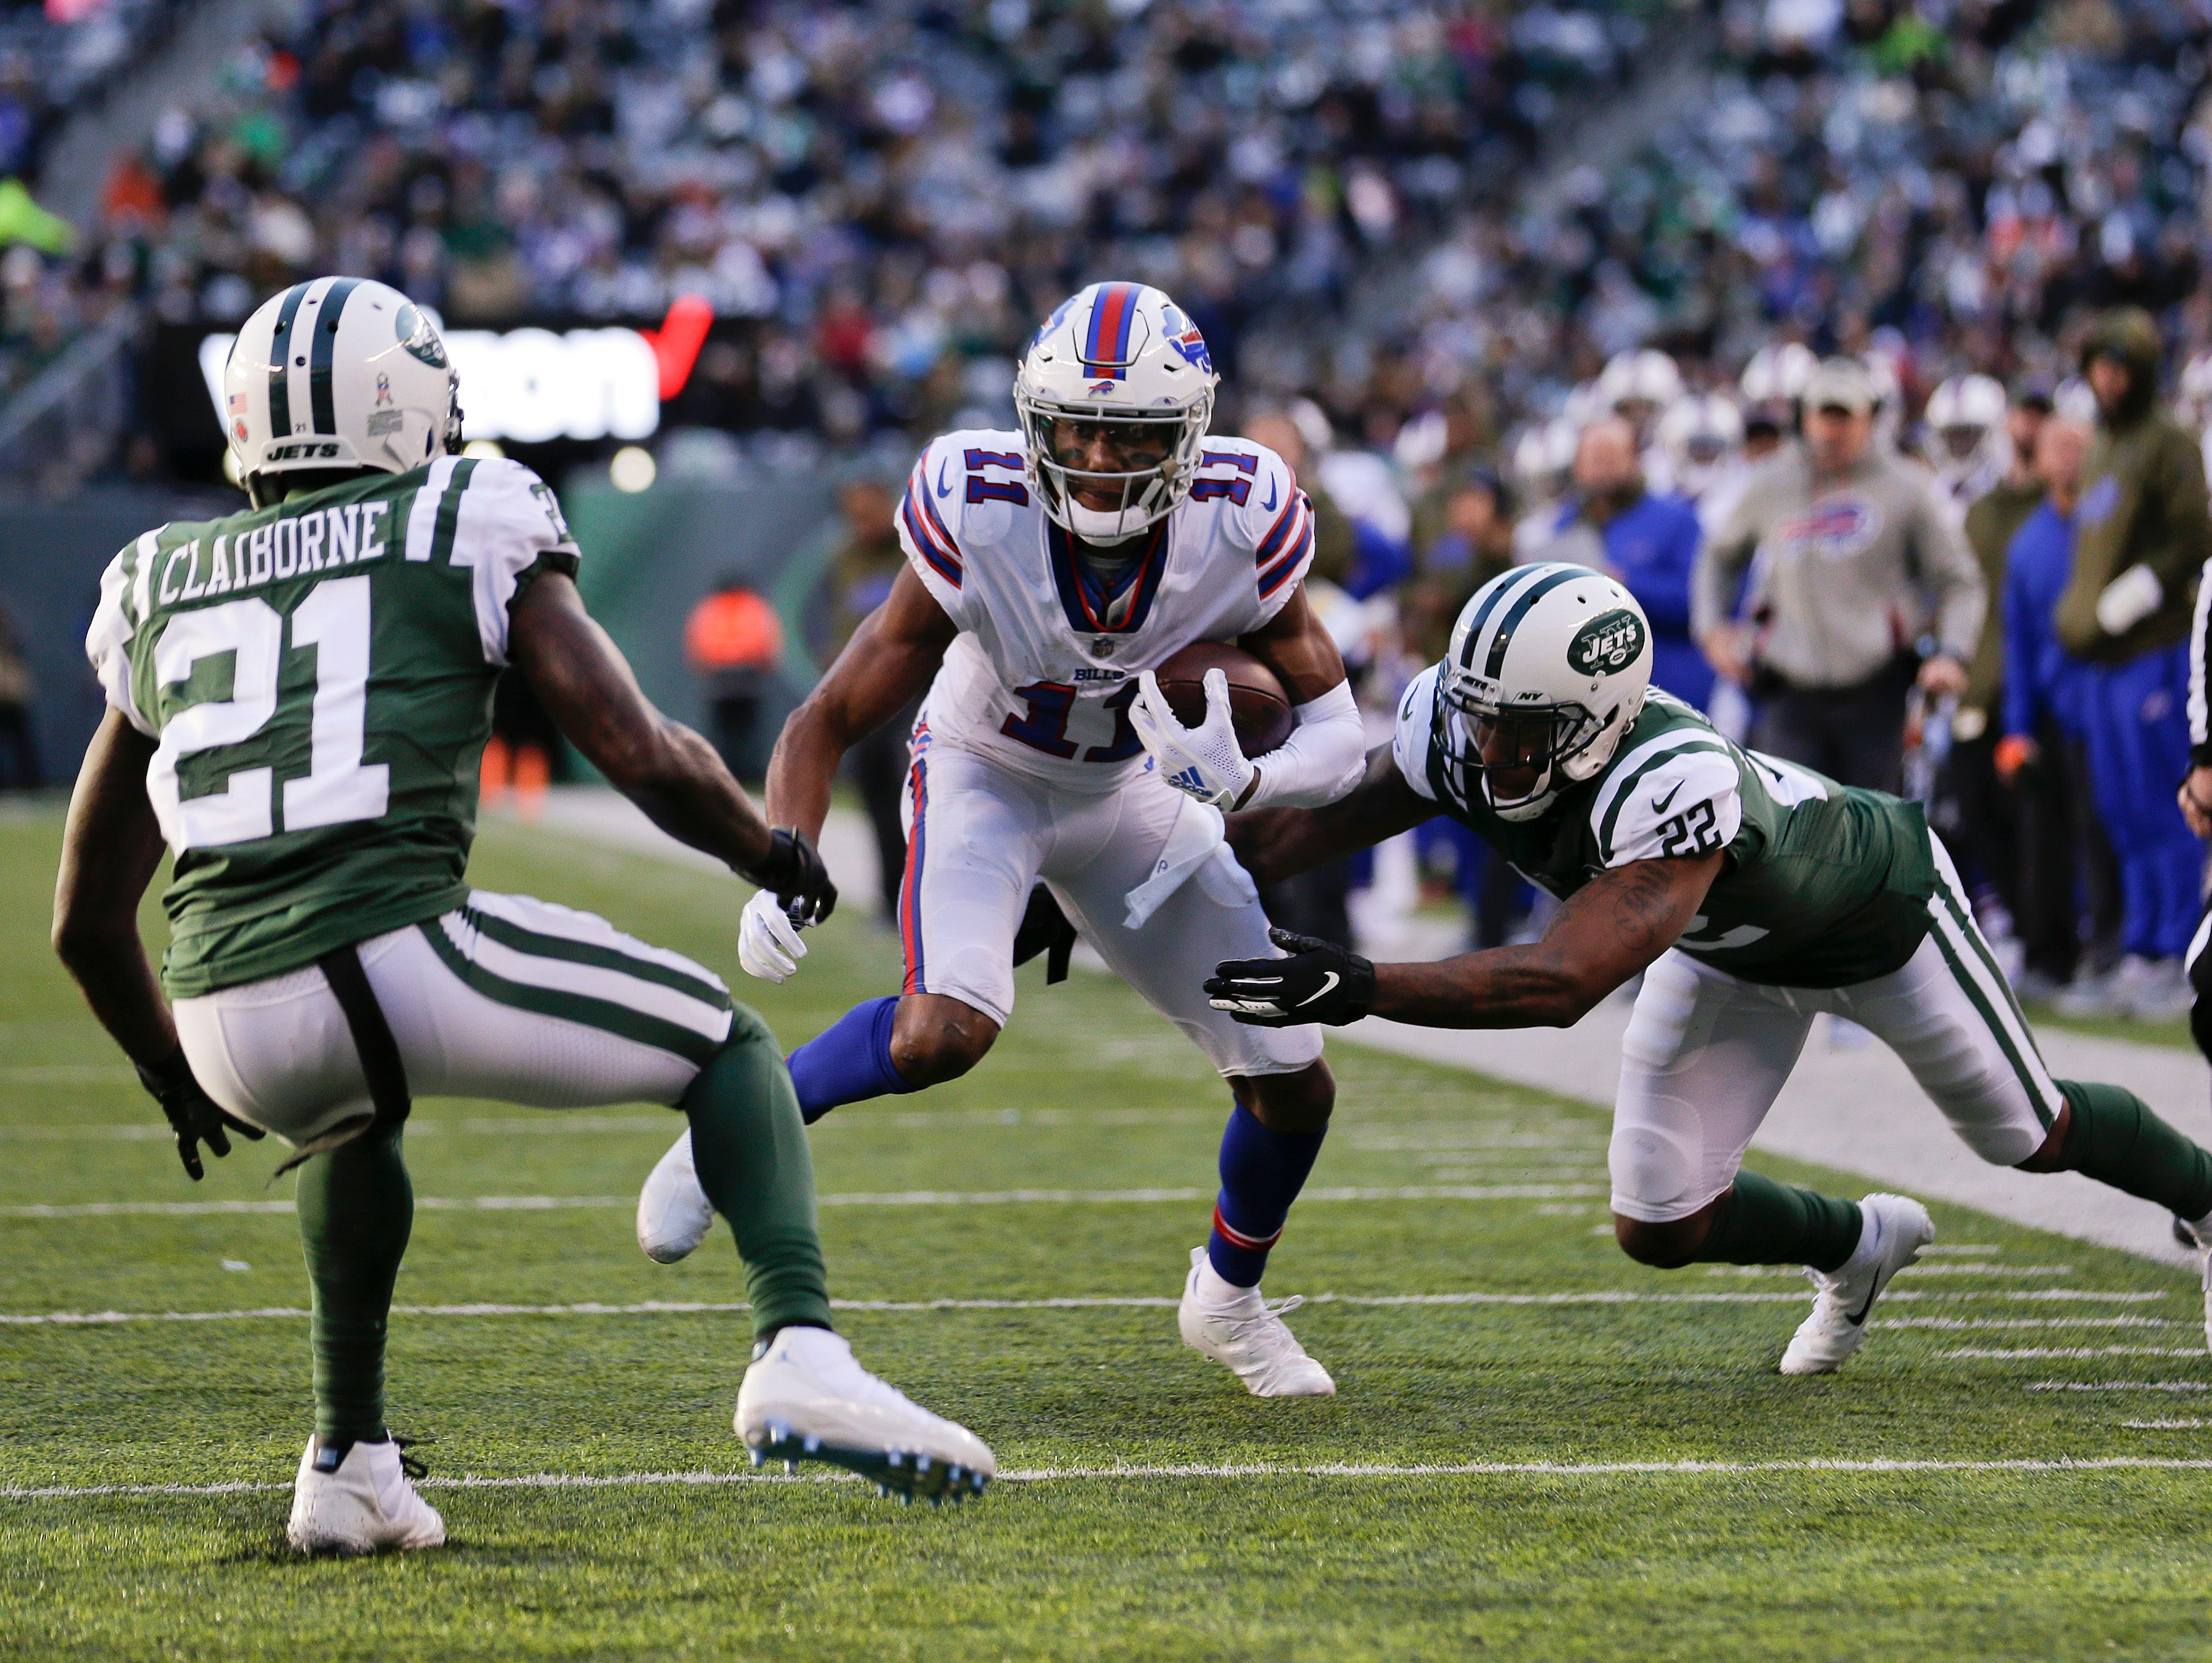 Buffalo Bills wide receiver Zay Jones (11) tries to evade New York Jets cornerback Trumaine Johnson (22) and cornerback Morris Claiborne (21) during the third quarter of an NFL football game, Sunday, Nov. 11, 2018, in East Rutherford, N.J. (AP Photo/Seth Wenig)